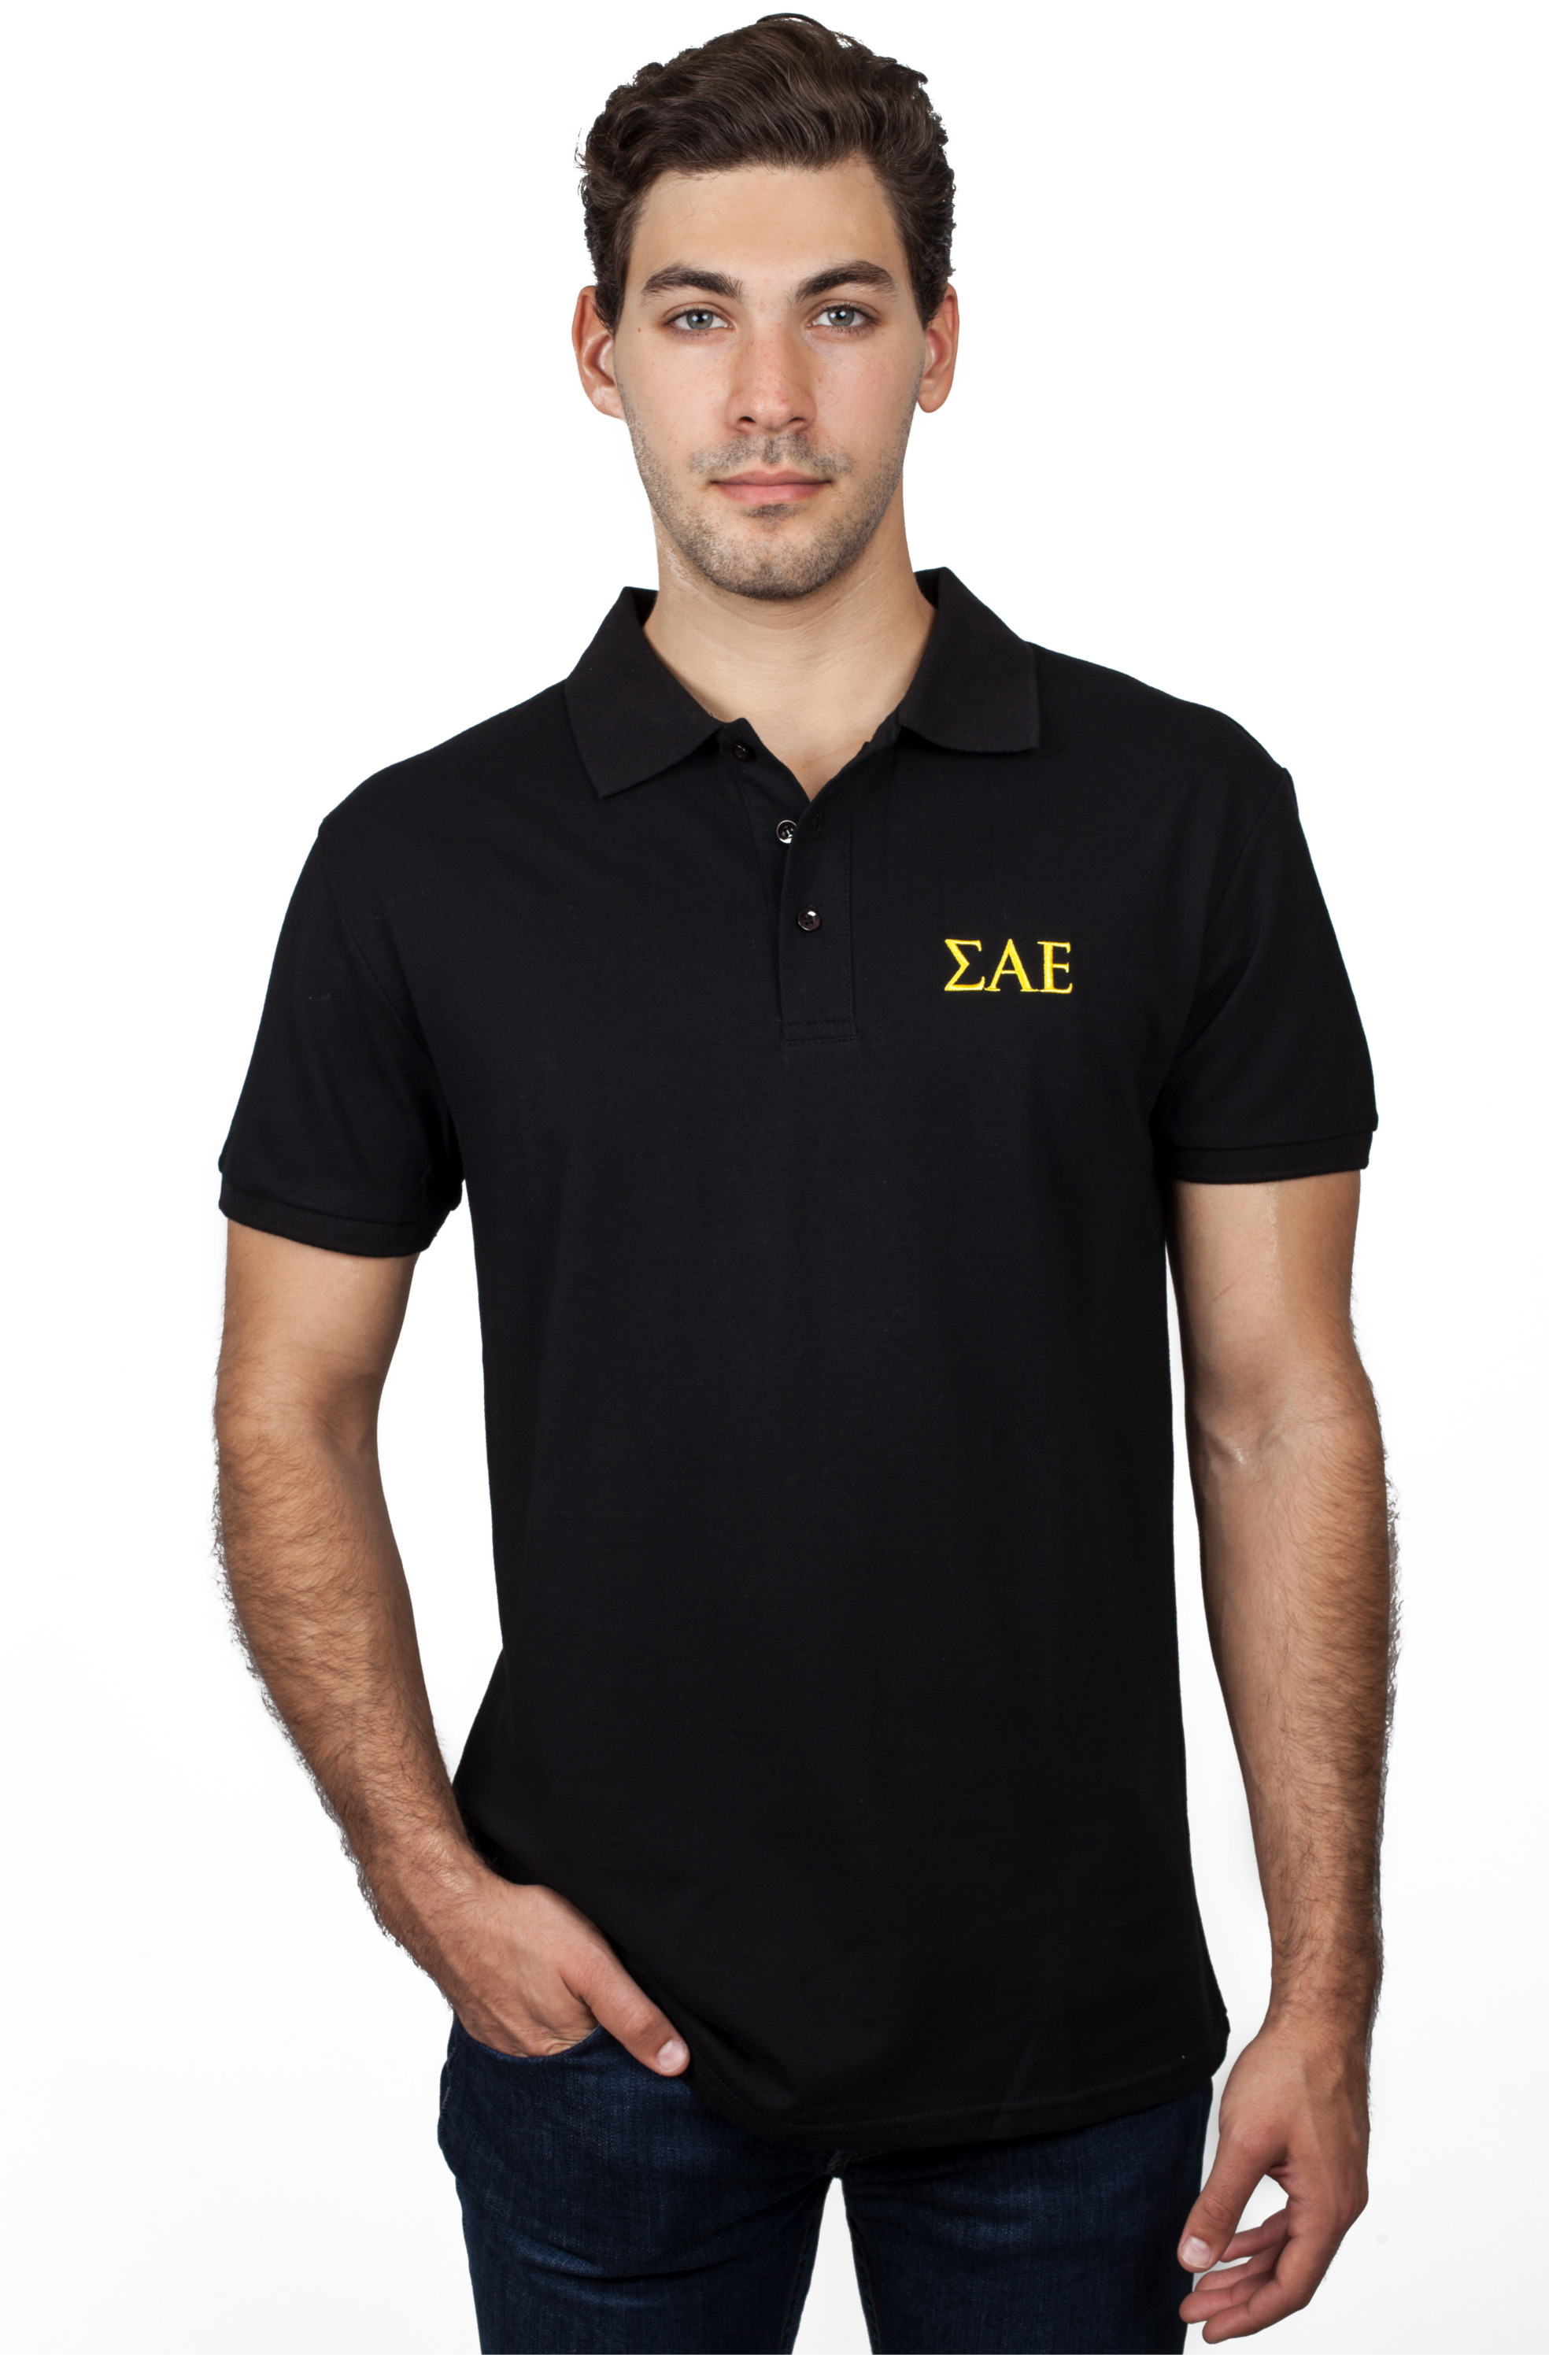 Shop for customizable Sae clothing on Zazzle. Check out our t-shirts, polo shirts, hoodies, & more great items. Start browsing today!